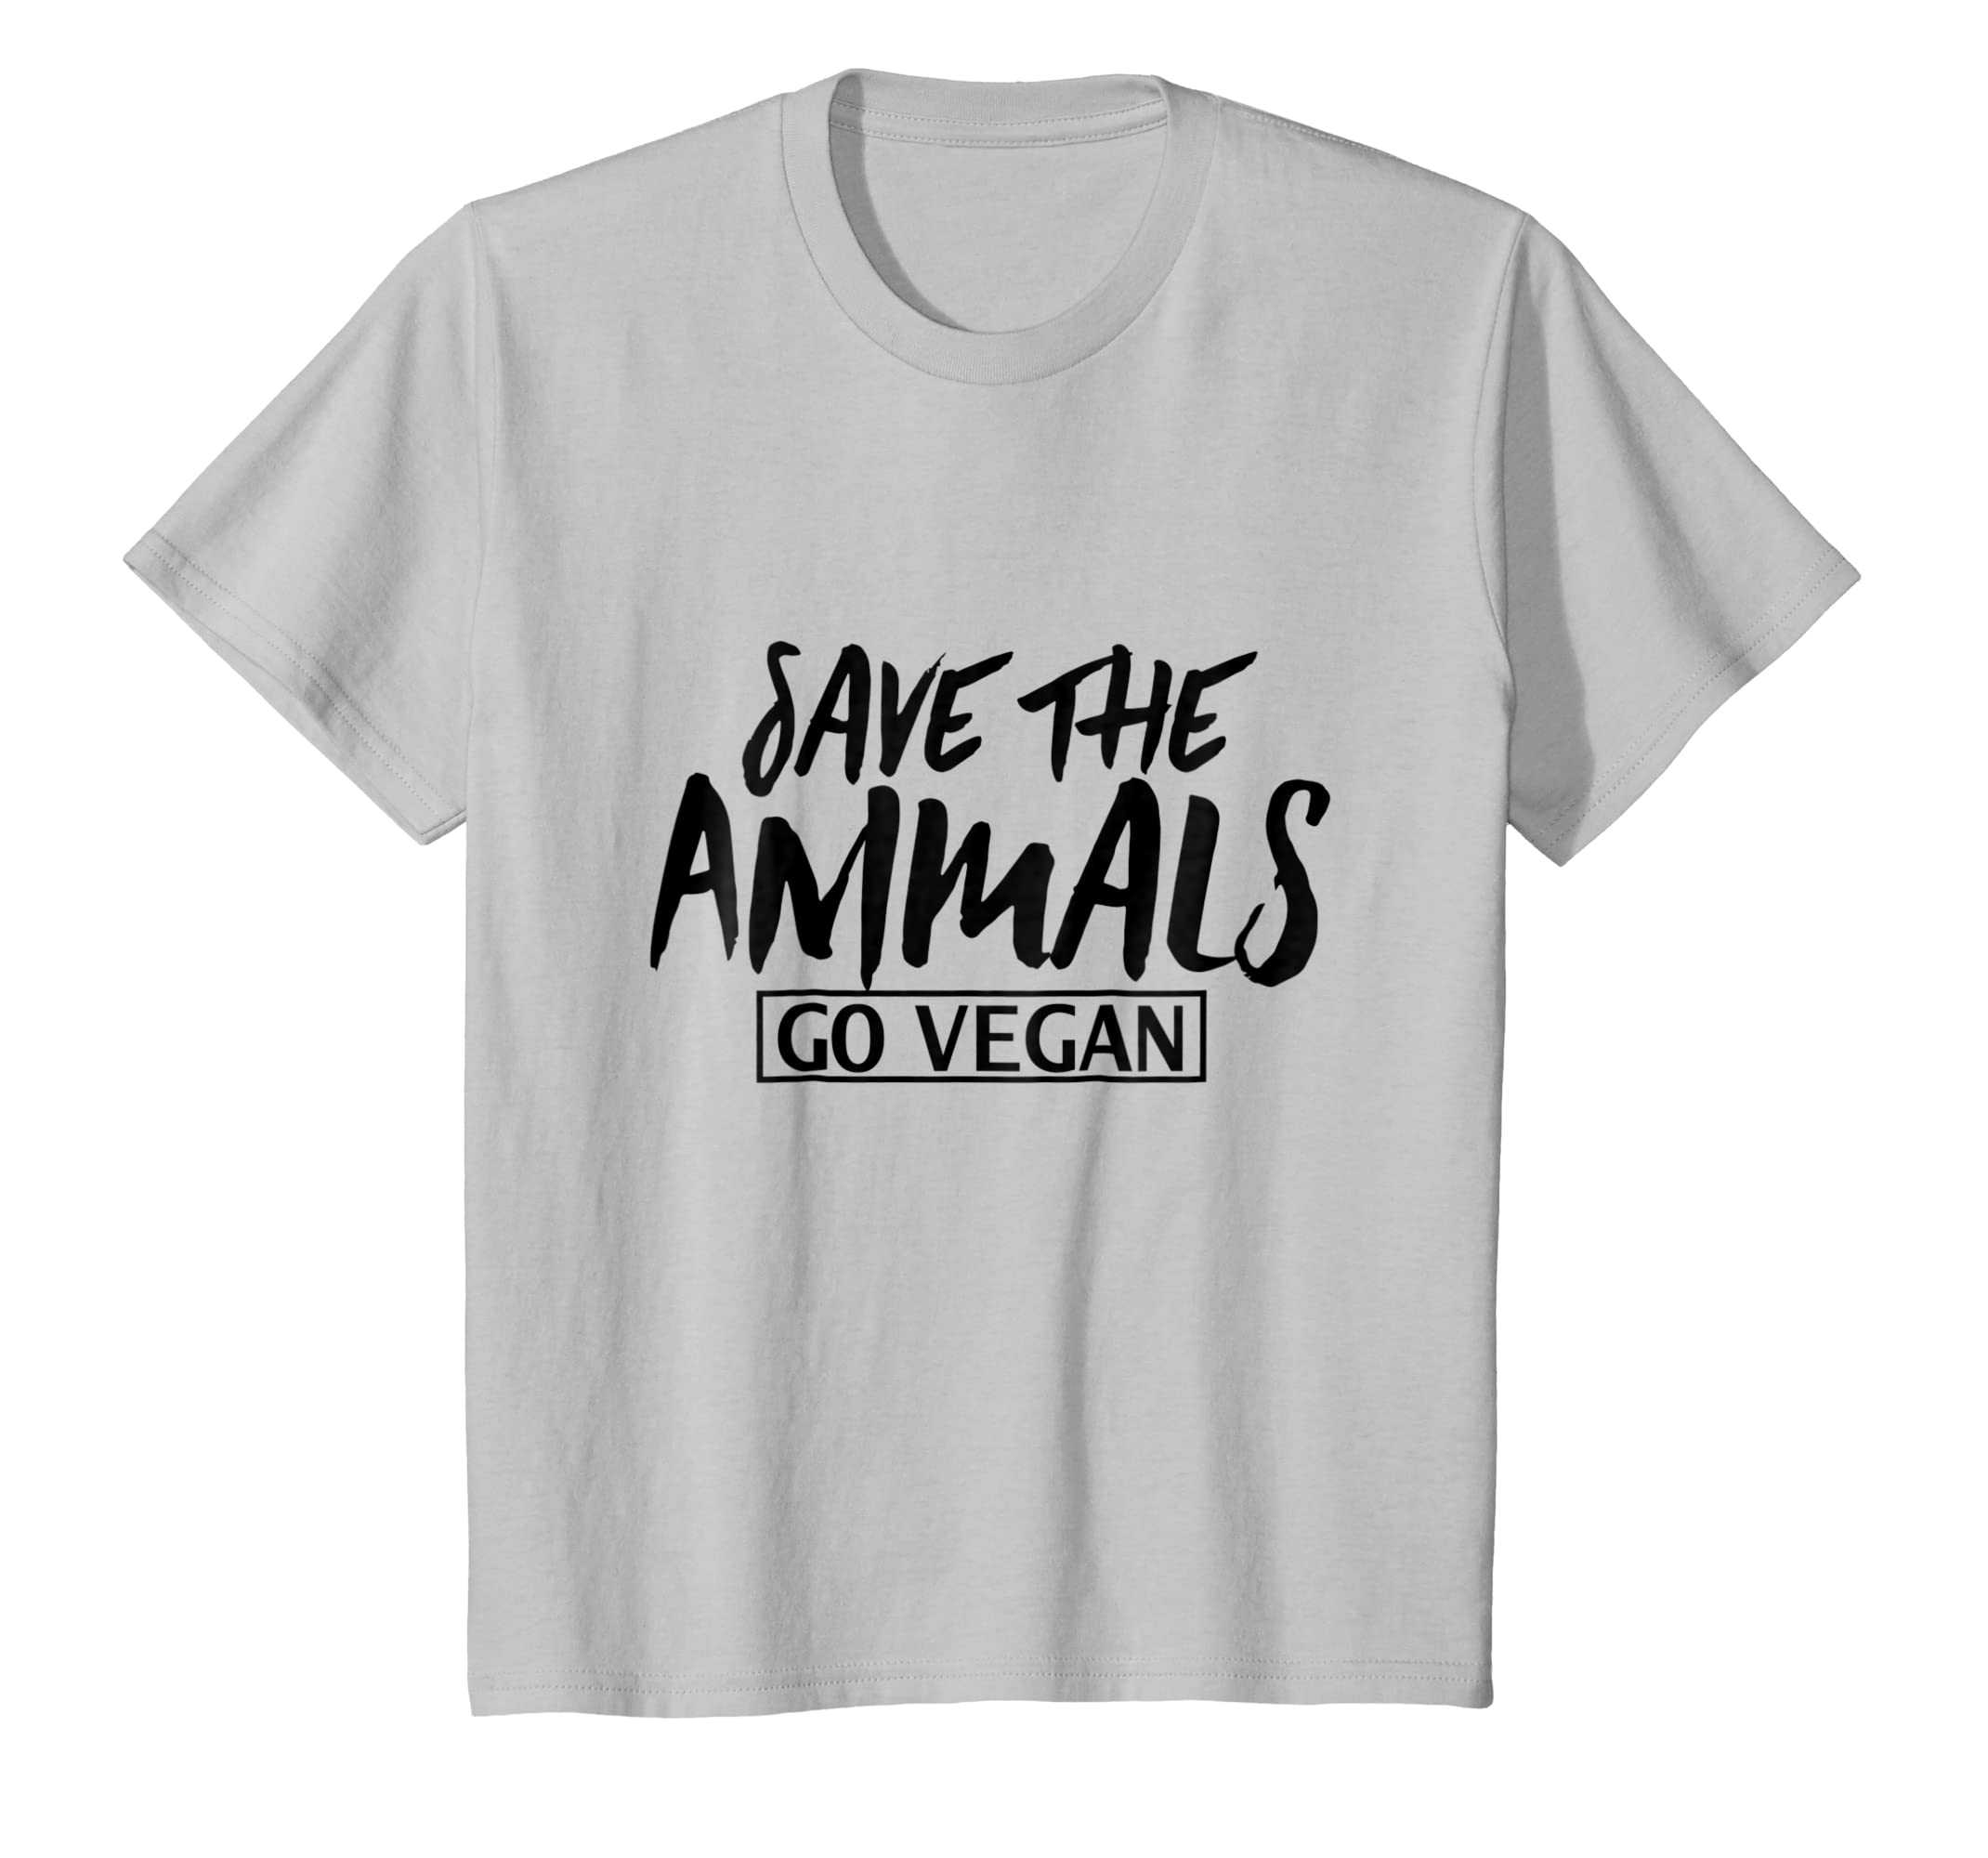 0d06e203 Amazon.com: Save The Animals GO VEGAN T-shirt: Clothing